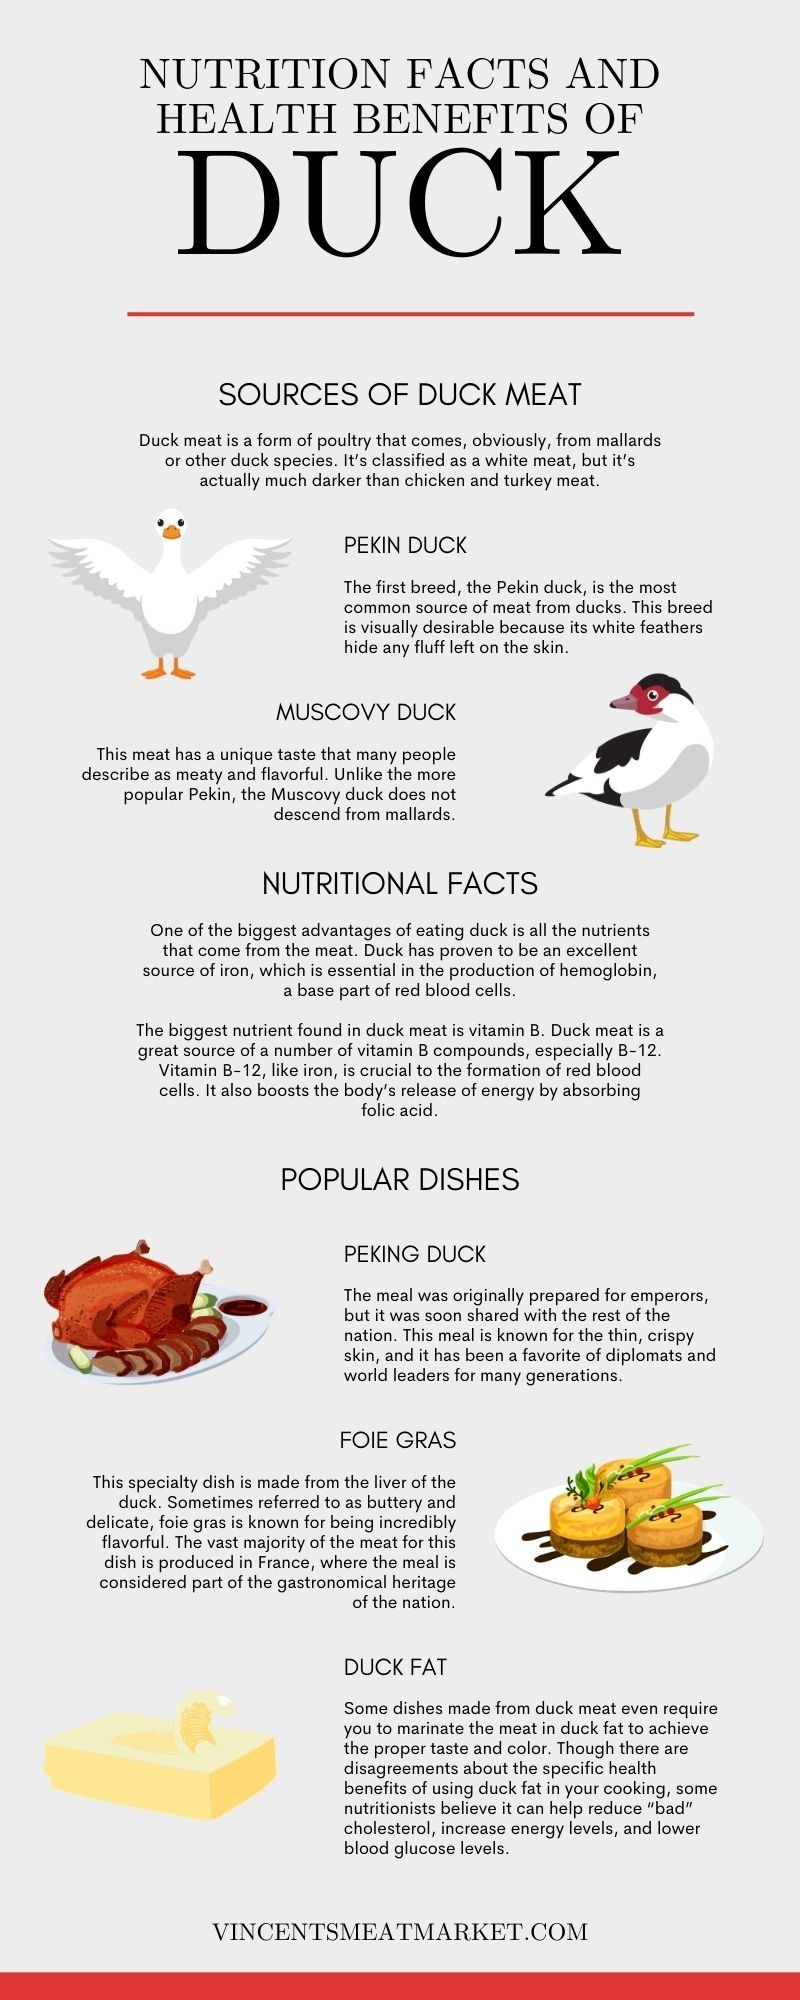 Nutrition Facts and Health Benefits of Duck